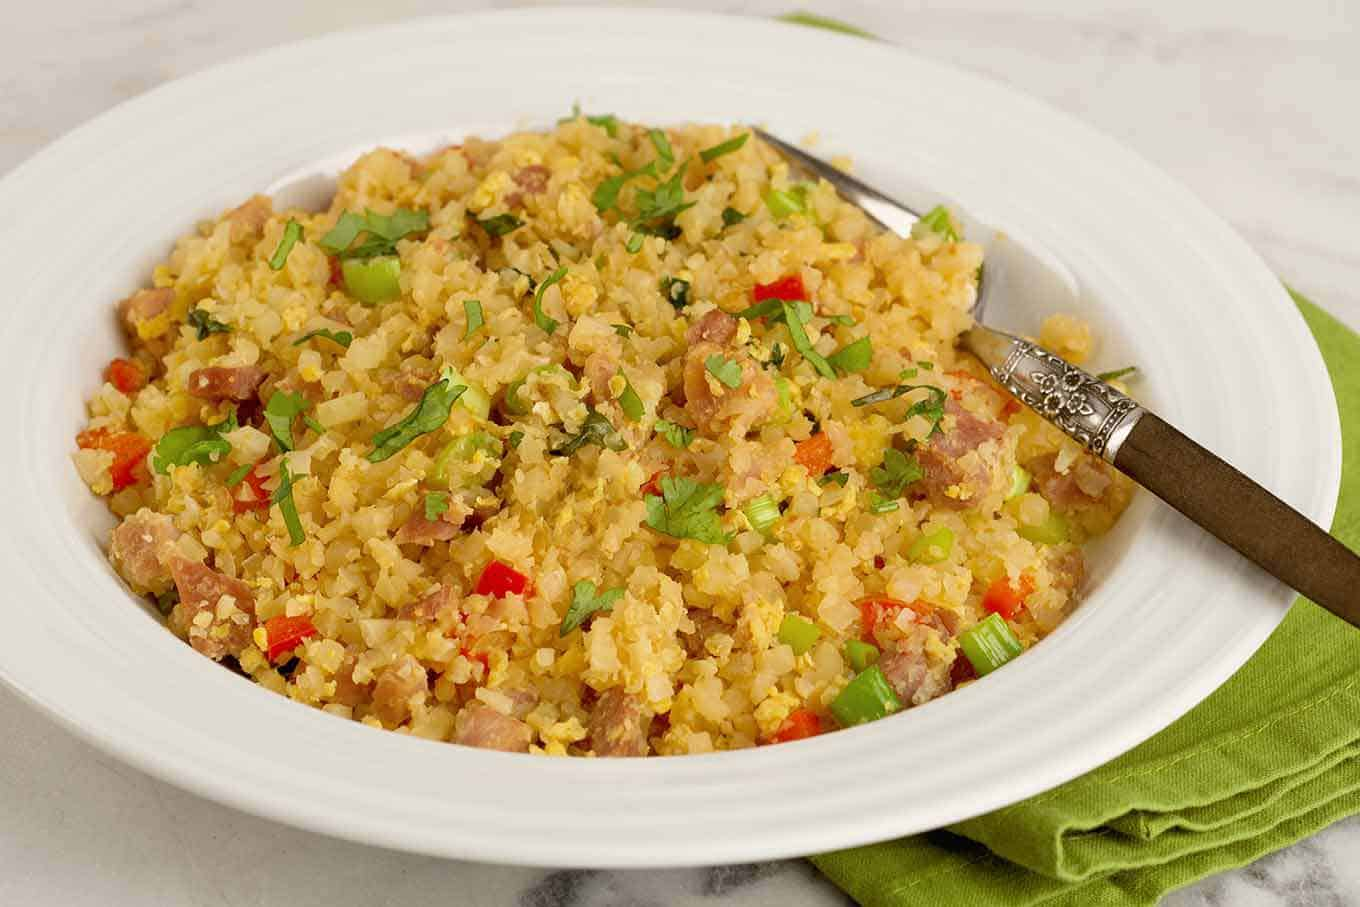 A serving of riced cauliflower fried rice in a shallow bowl with fork.